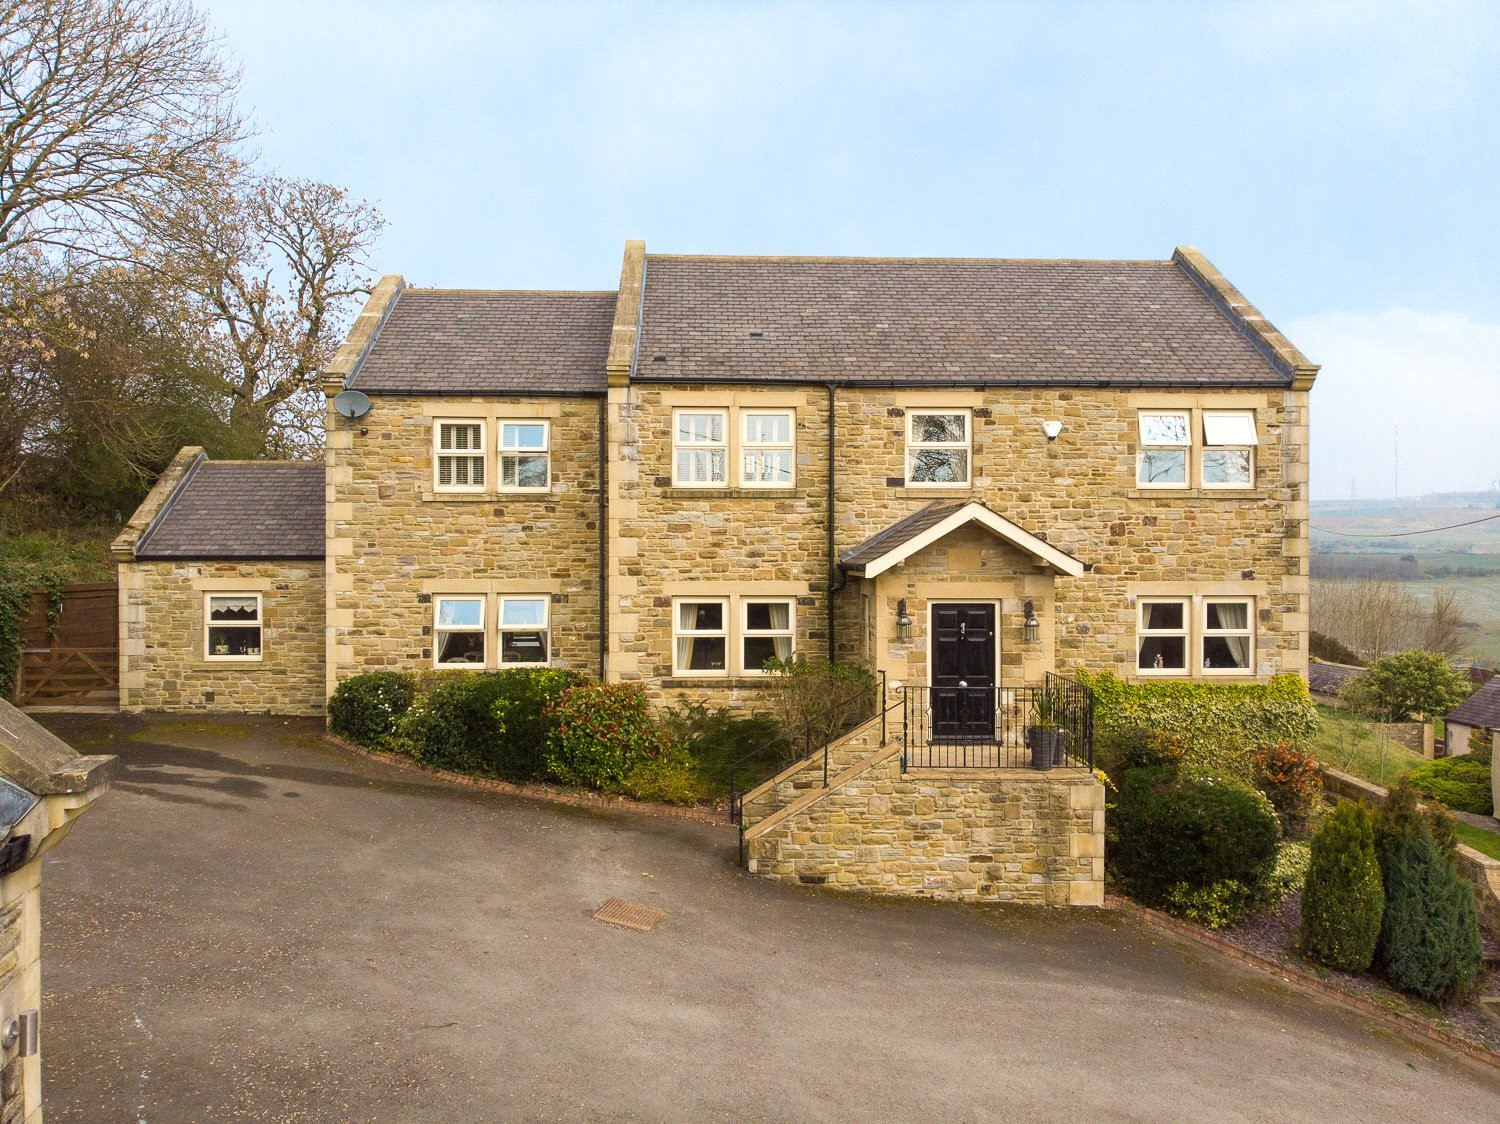 stone built countryside house Durham equestrian